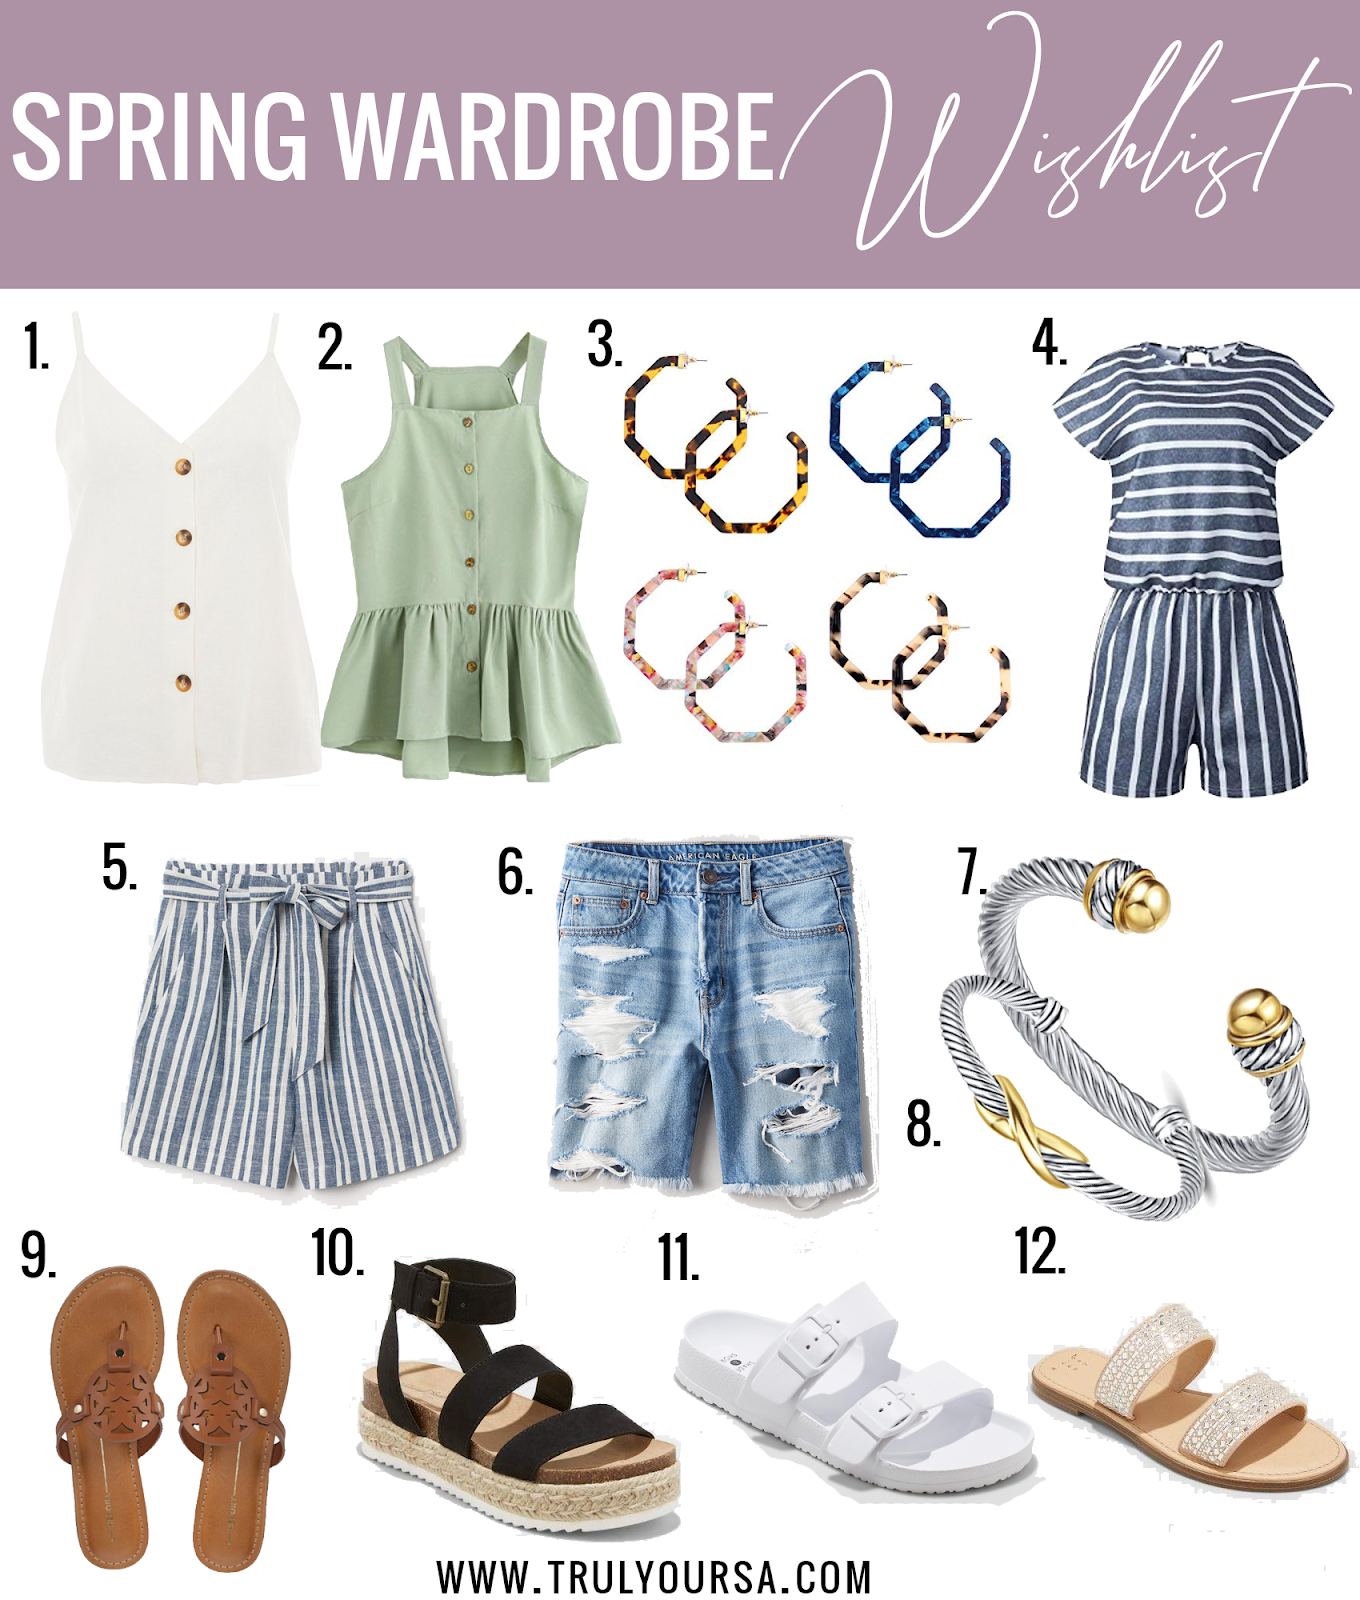 It's the second day of beautiful weather here and it has me itching to get outside! It also has me wanting to add a ton of new clothes to my closet because my spring wardrobe is pretty non-existent. Today I'm sharing my spring wardrobe wishlist where every item is under $50!! #springfashion #springwardrobewishlist #springwardrobe #springshopping